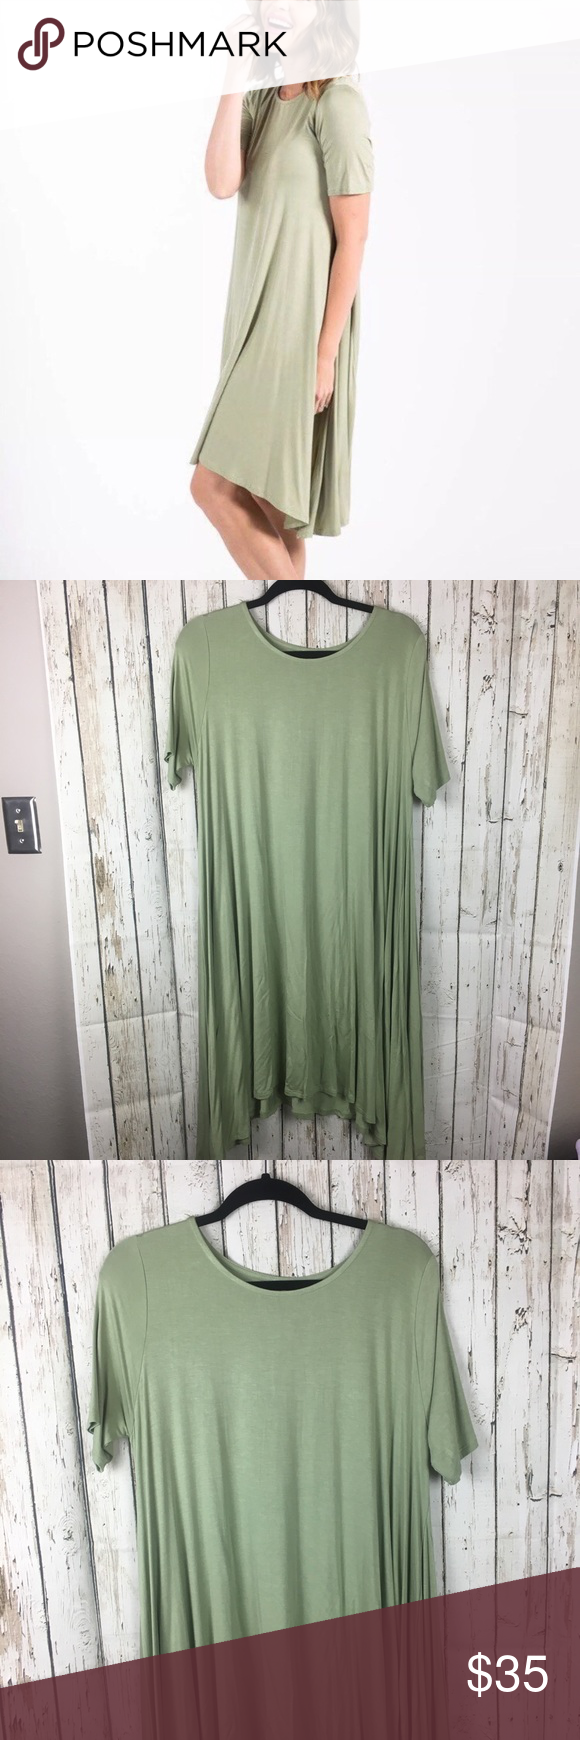 Agnes & Dora Sway Joplin Dress Sage Green Size XL Agnes & and Dora Short Sleeve Sway Joplin Dress in Sage Green Size XL - Extra Large NWT - new with tags Agnes & Dora Dresses Midi #sagegreendress